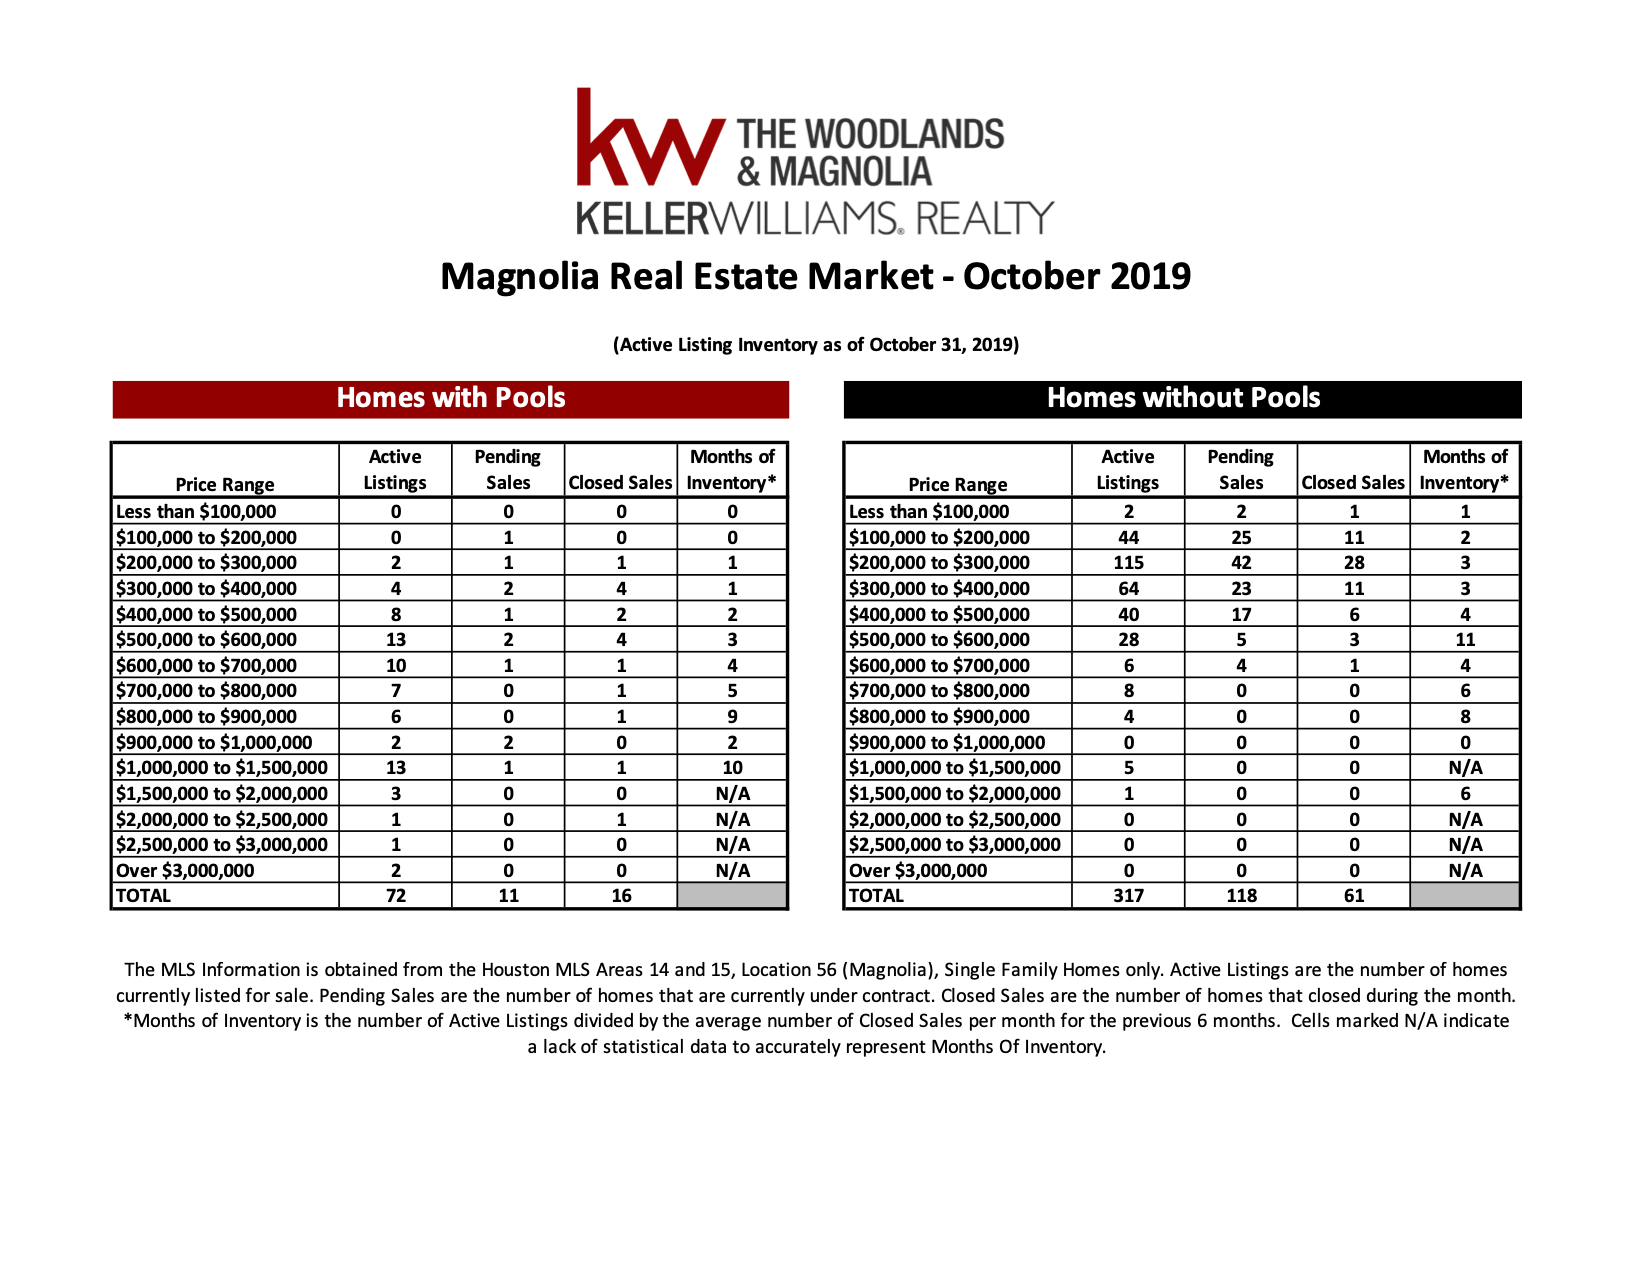 , October 2019 MarketWatch Report – Magnolia, KW Woodlands, KW Woodlands